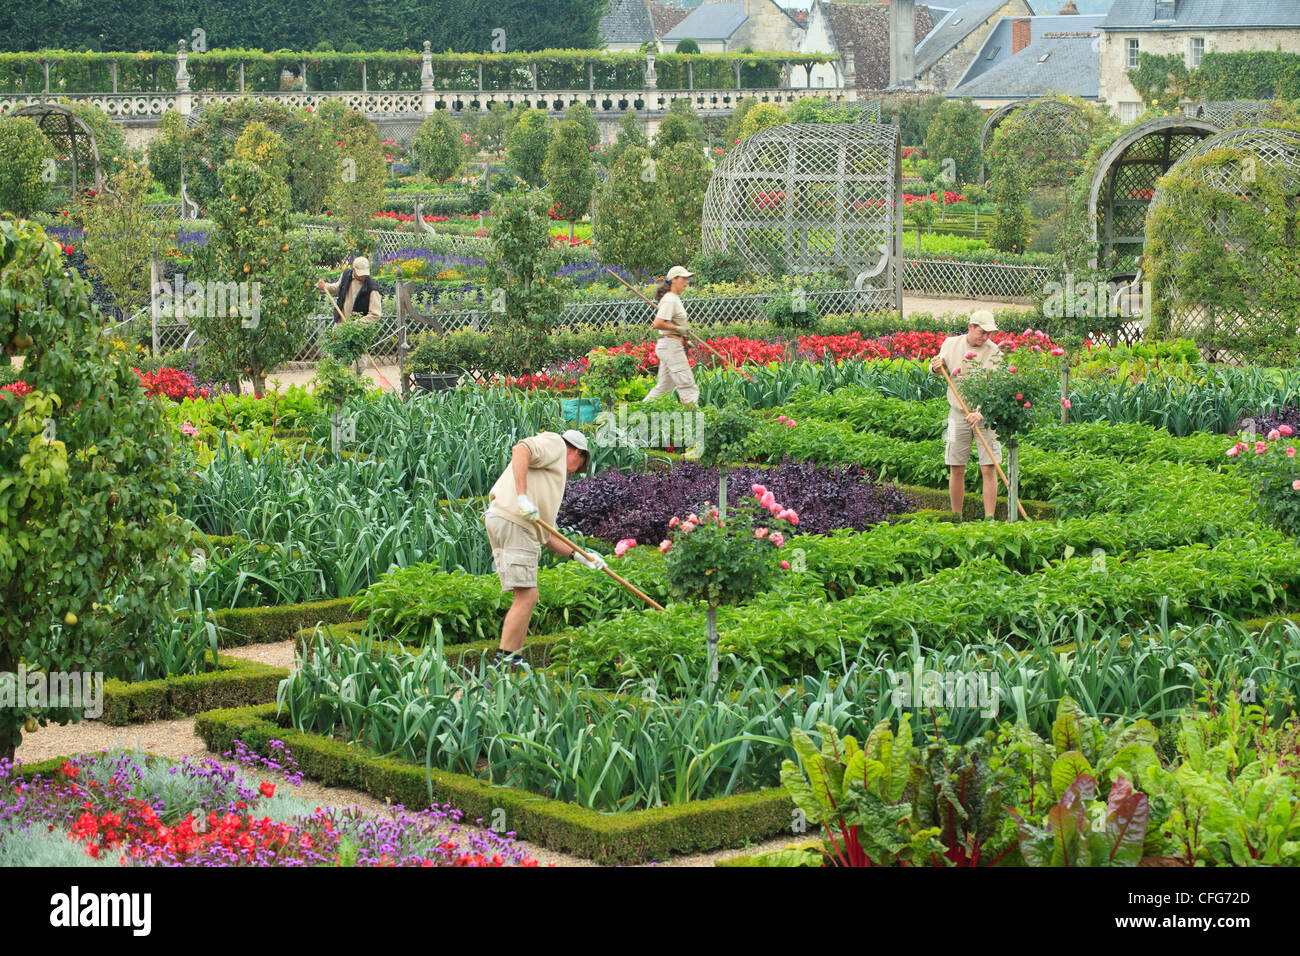 Kitchen Gardeners France Gardens Of The Castle Of Villandry The Gardeners In The